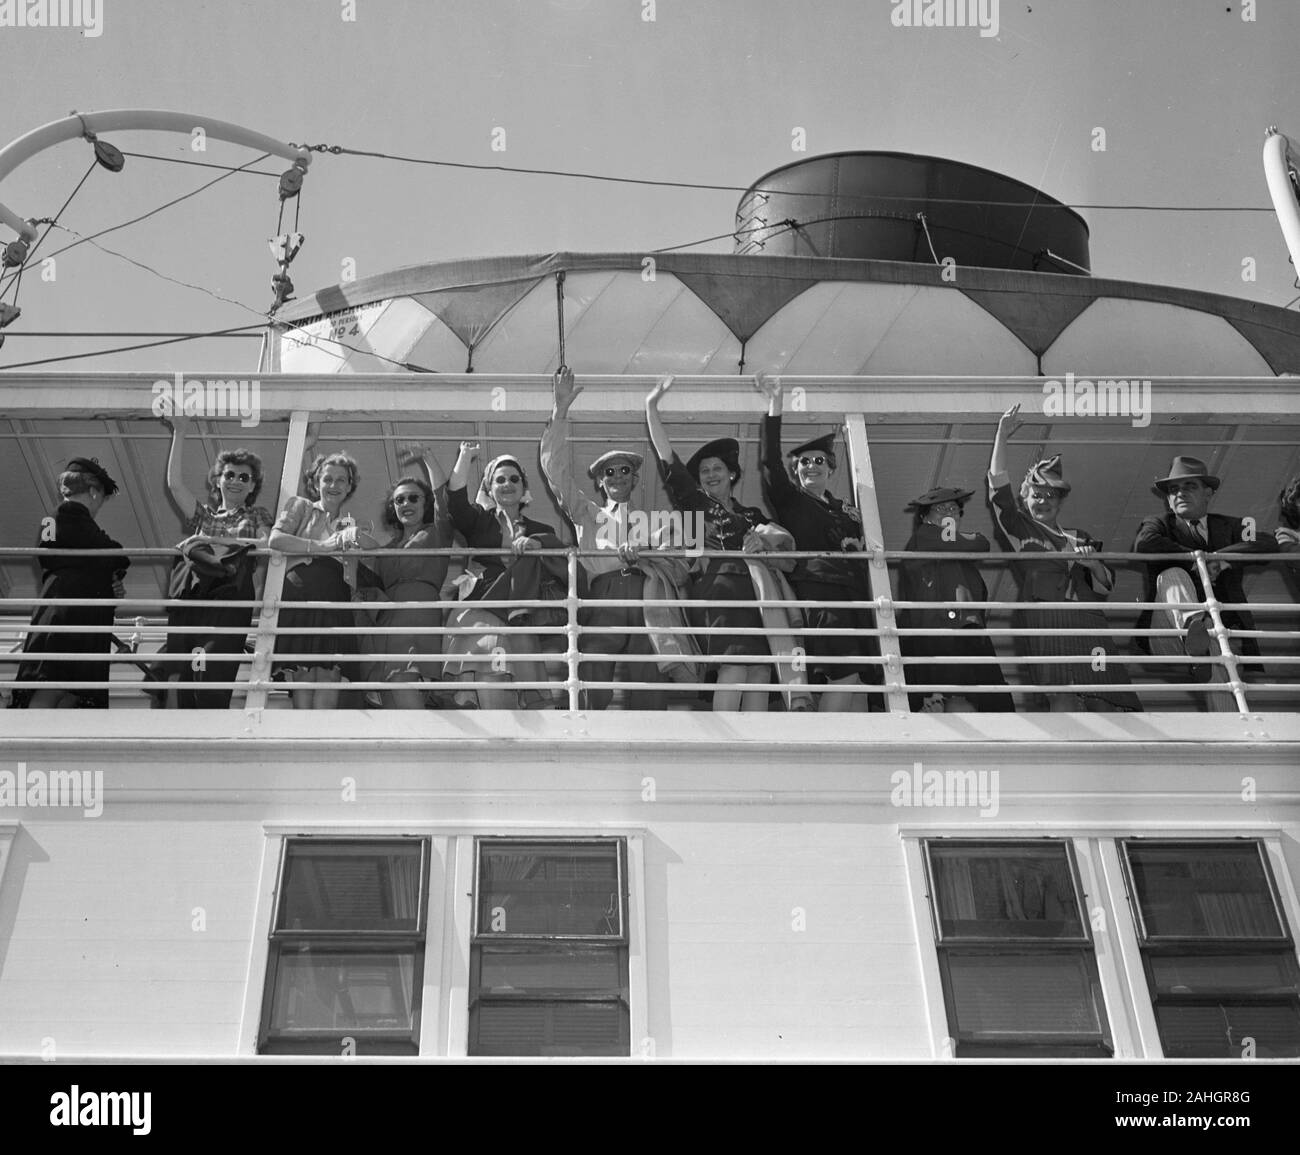 Passengers on the SS North America, 1942 Stock Photo